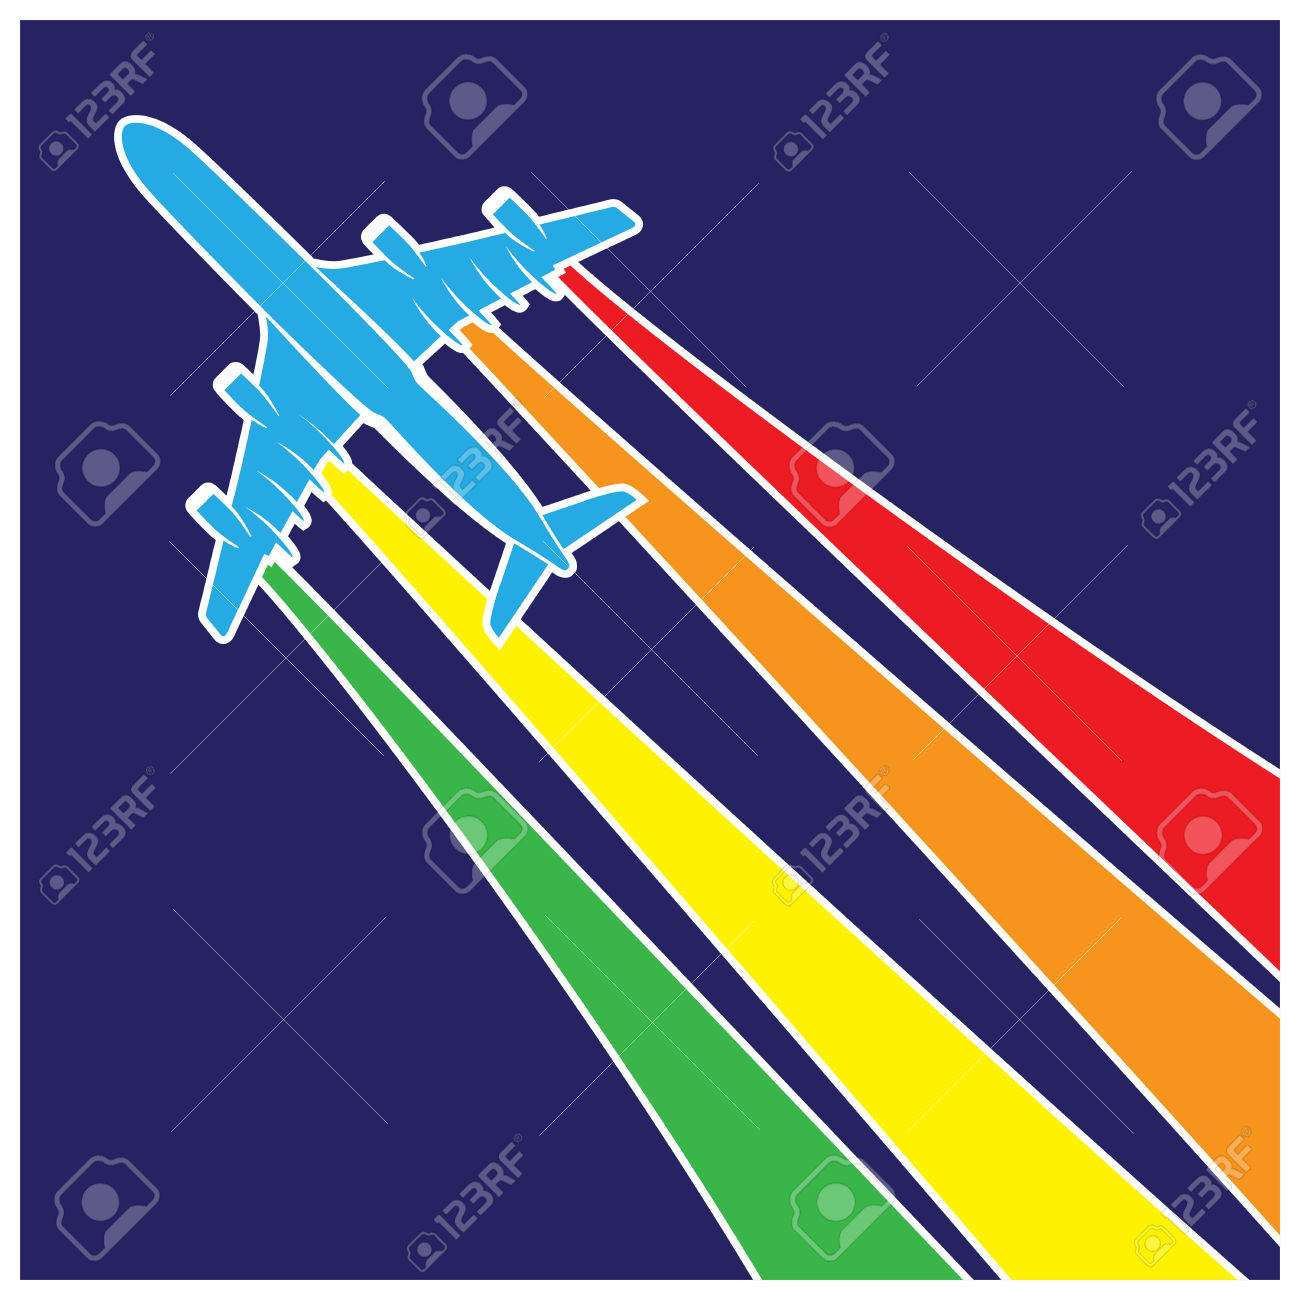 stylized vector illustration on the theme of aviation plane